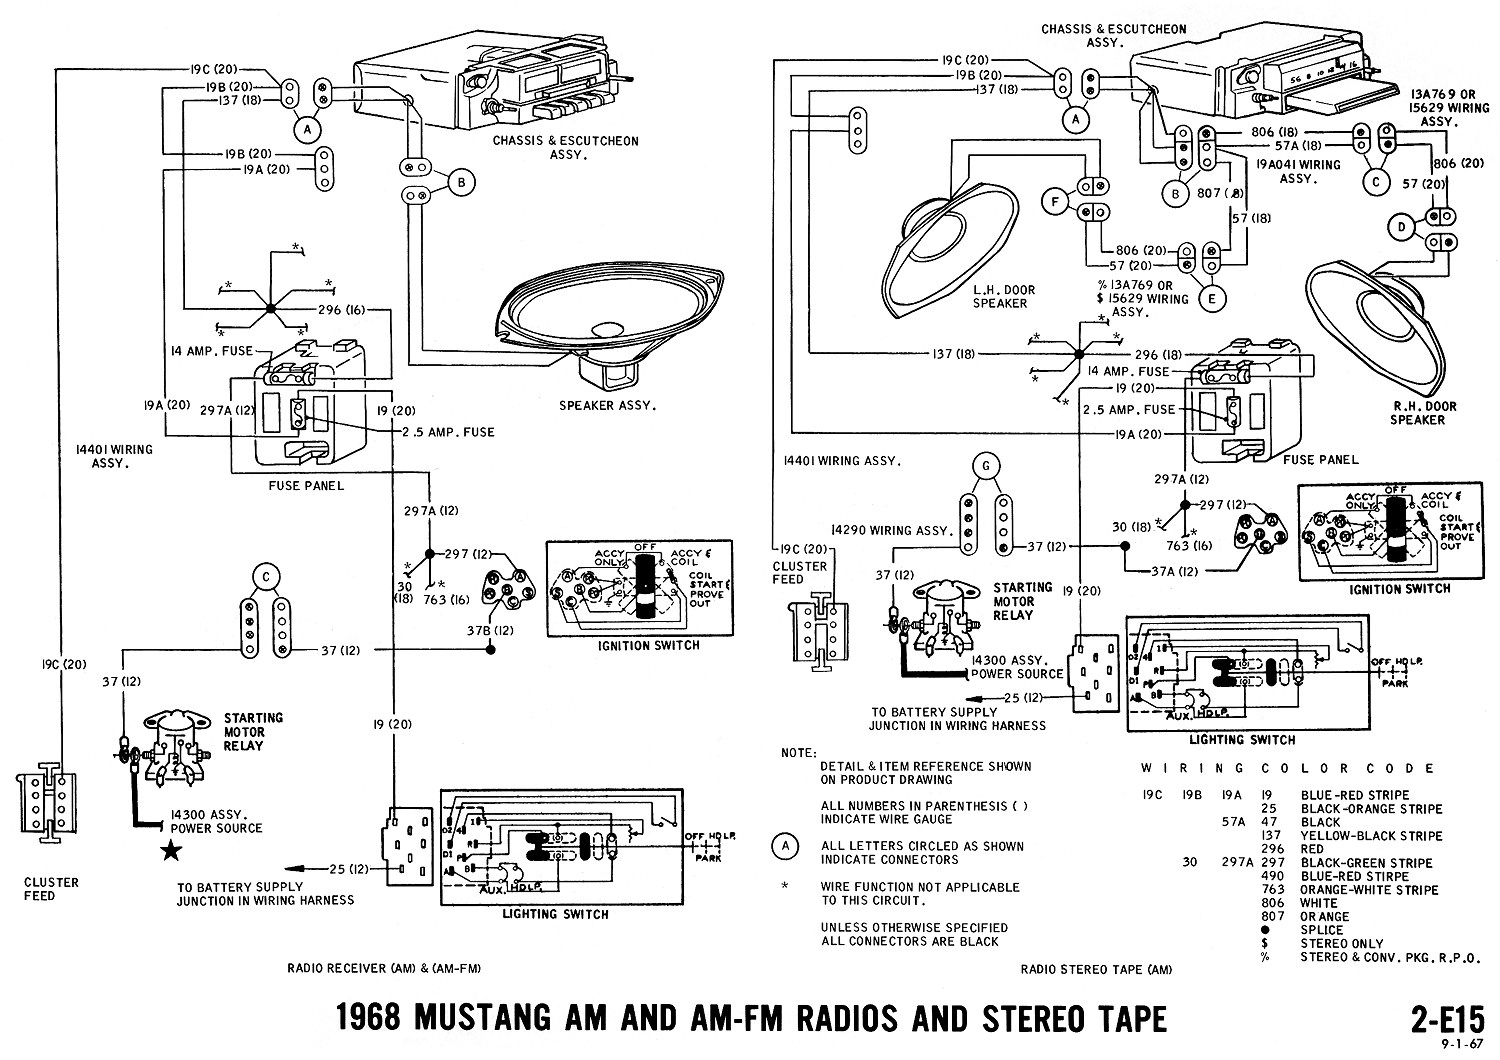 2006 gmc radio wiring diagram 2006 discover your wiring diagram mach 460 wiring diagram